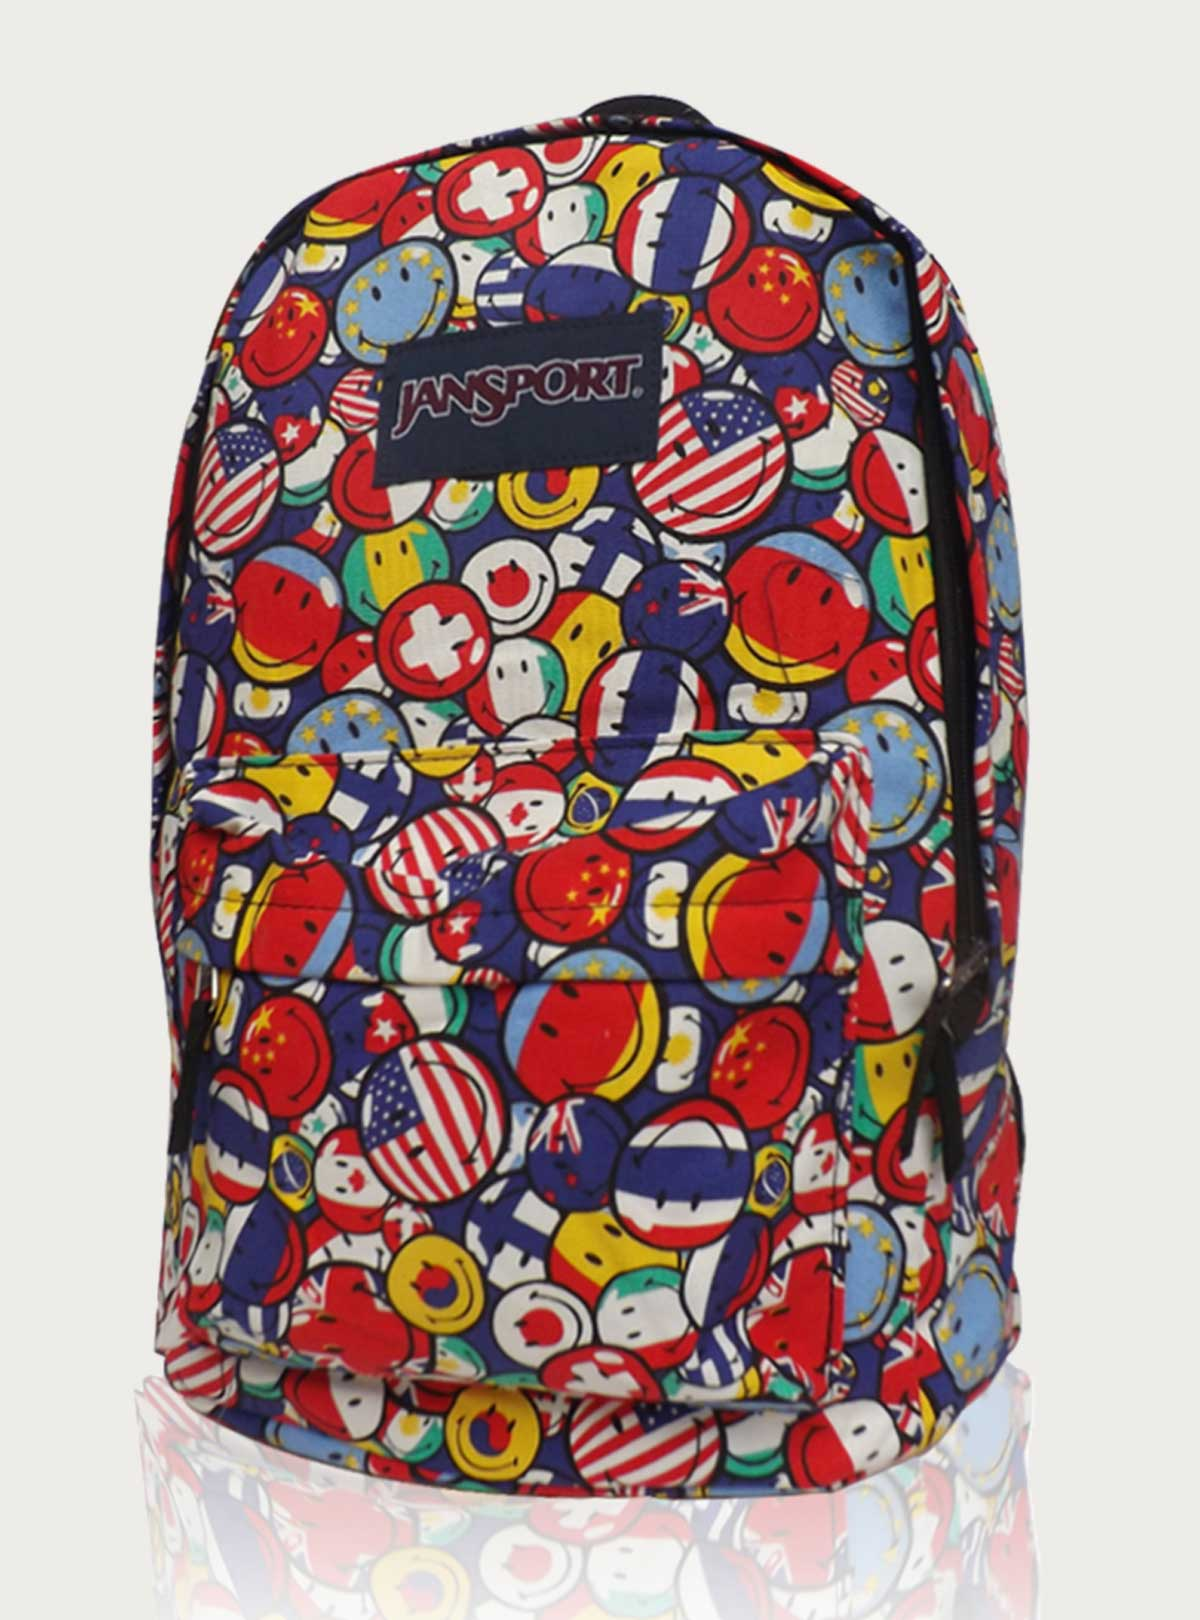 JANSPORTS Smiley Campus Backpack